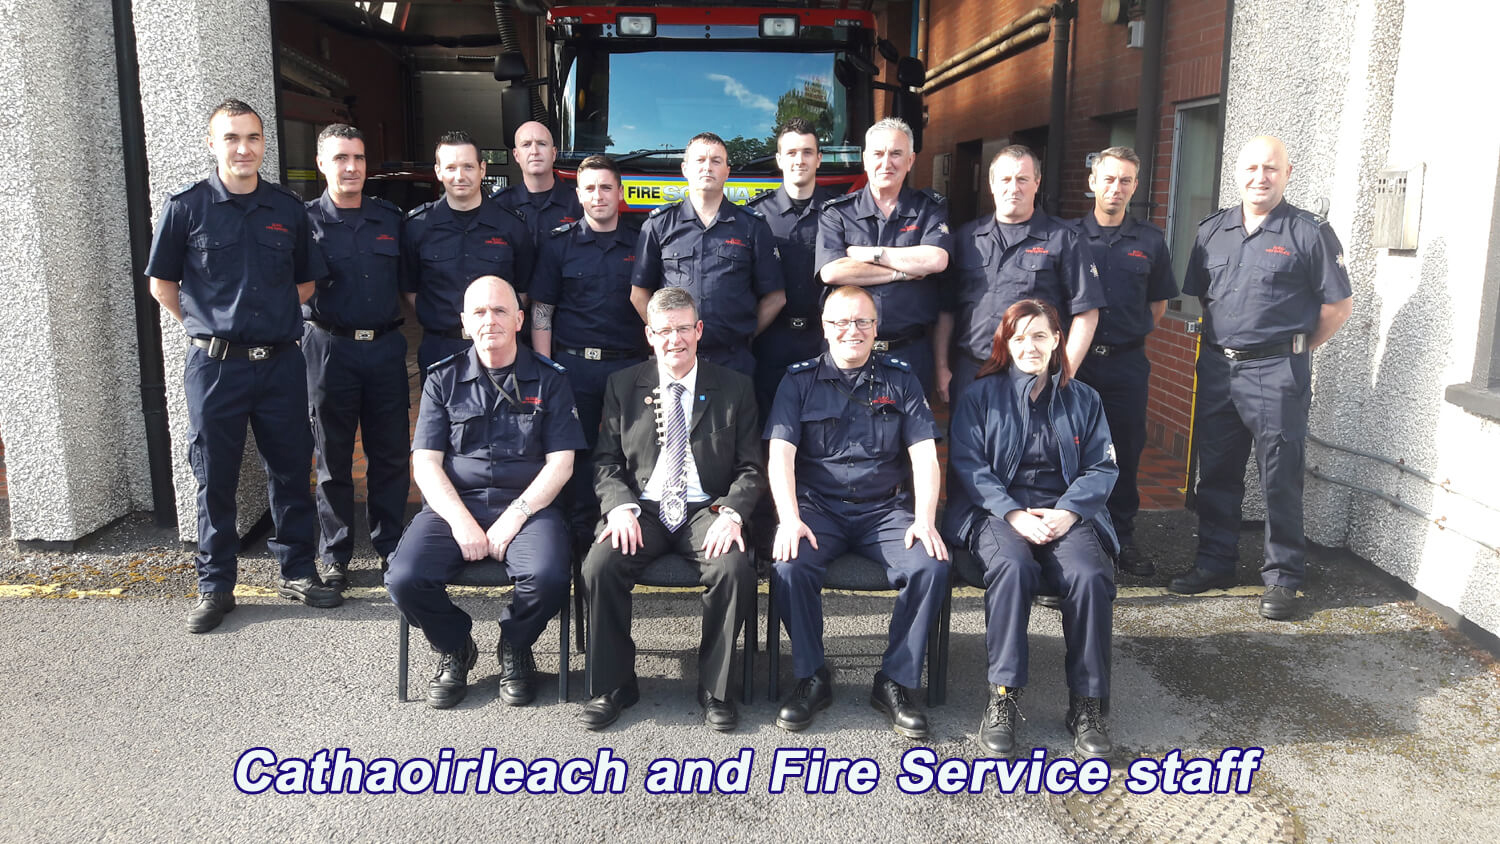 Cathaoirleach Commends Sligo Fire Service Personnel